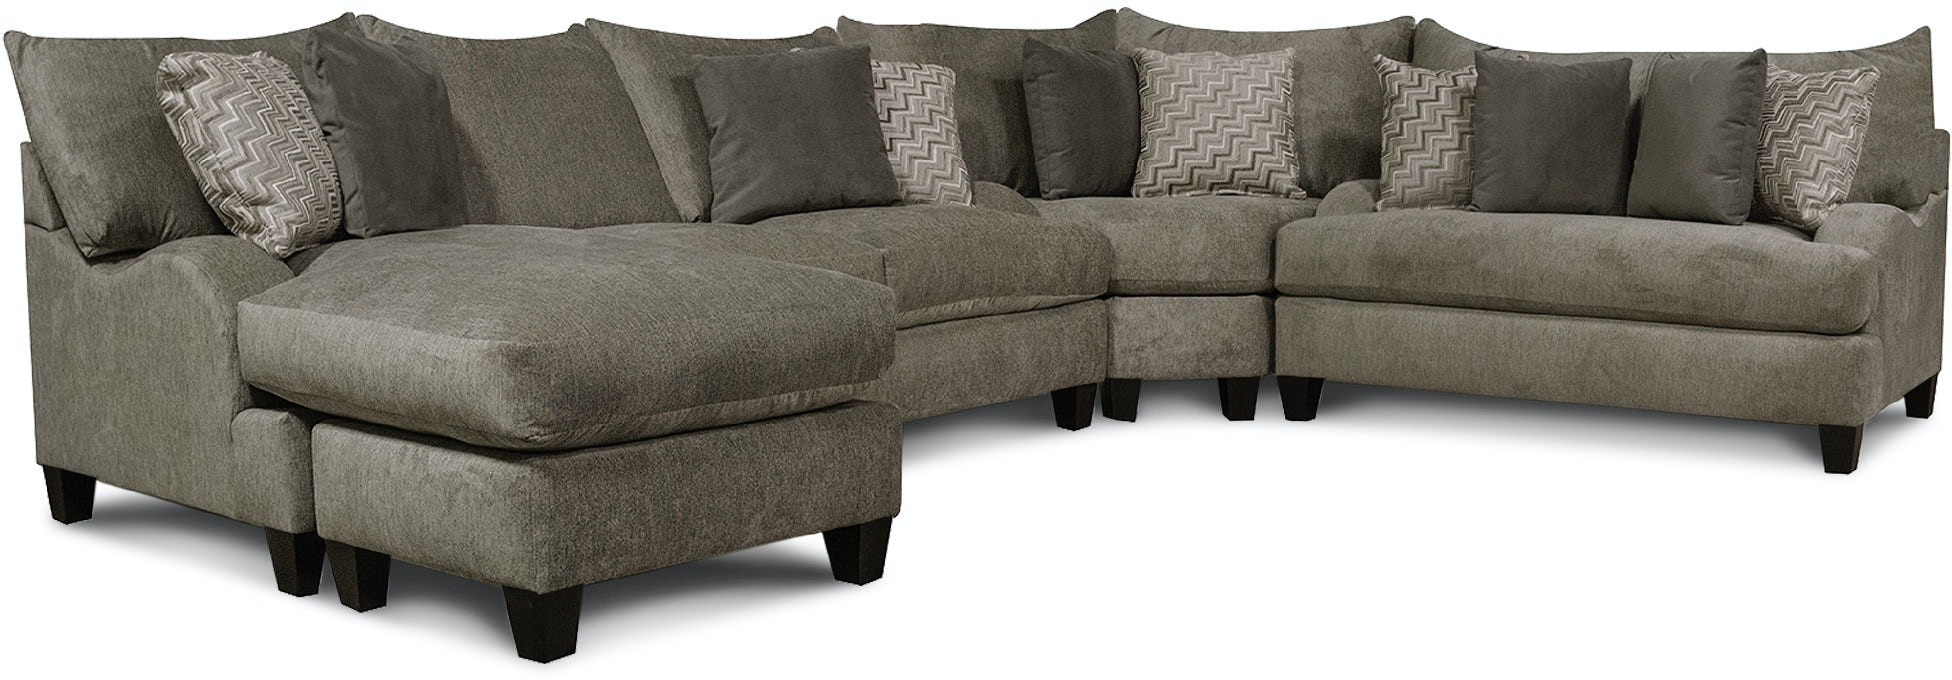 England Living Room Catalina Sectional 6n00 Sect England